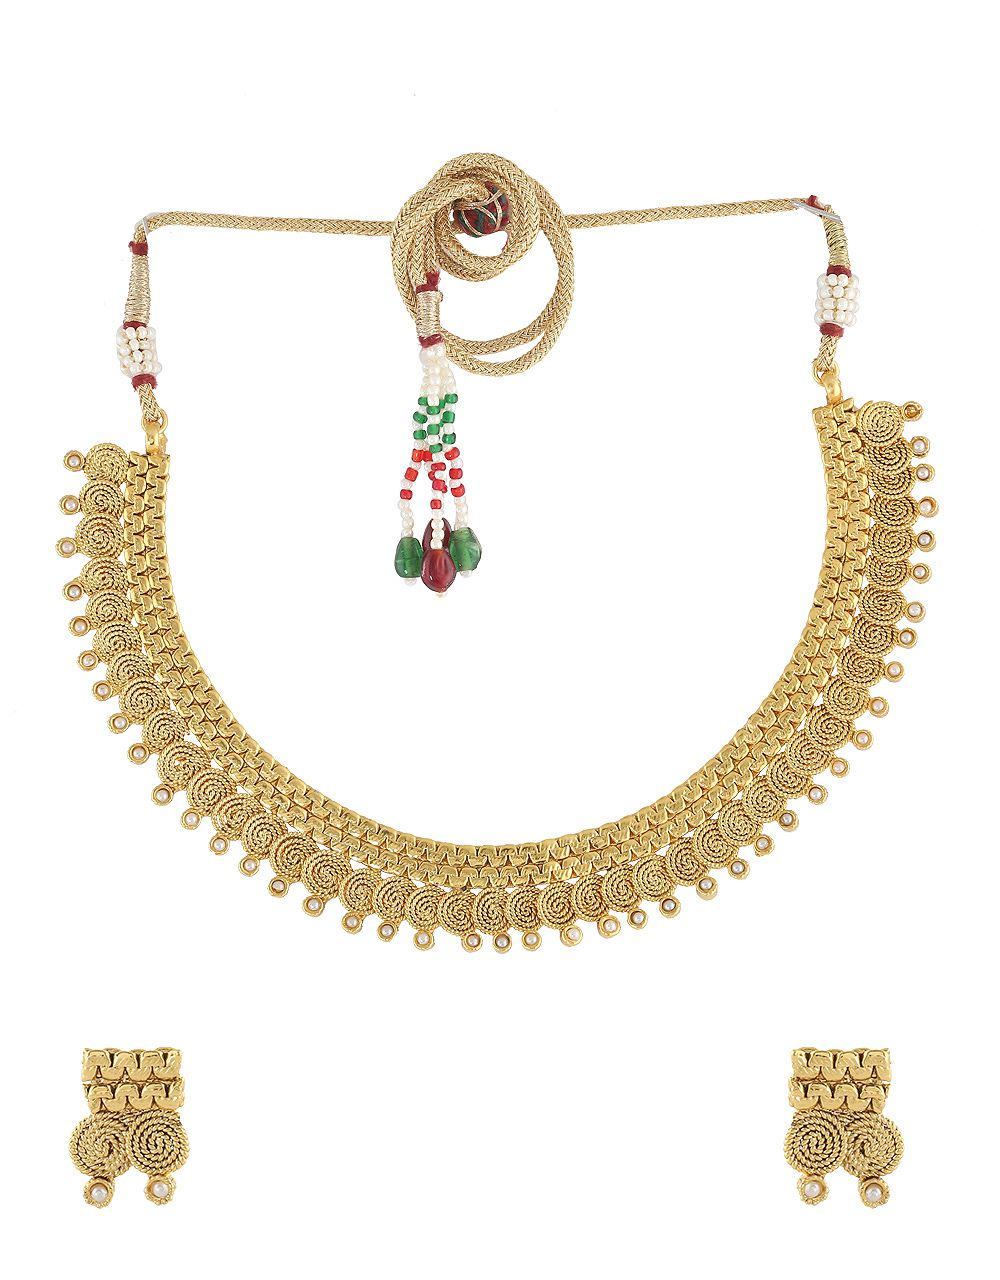 Anuradha Art Gold Finish Styled With Pearl Beads Coin Pattern Wonderful Traditional Necklace Set For Women/Girls